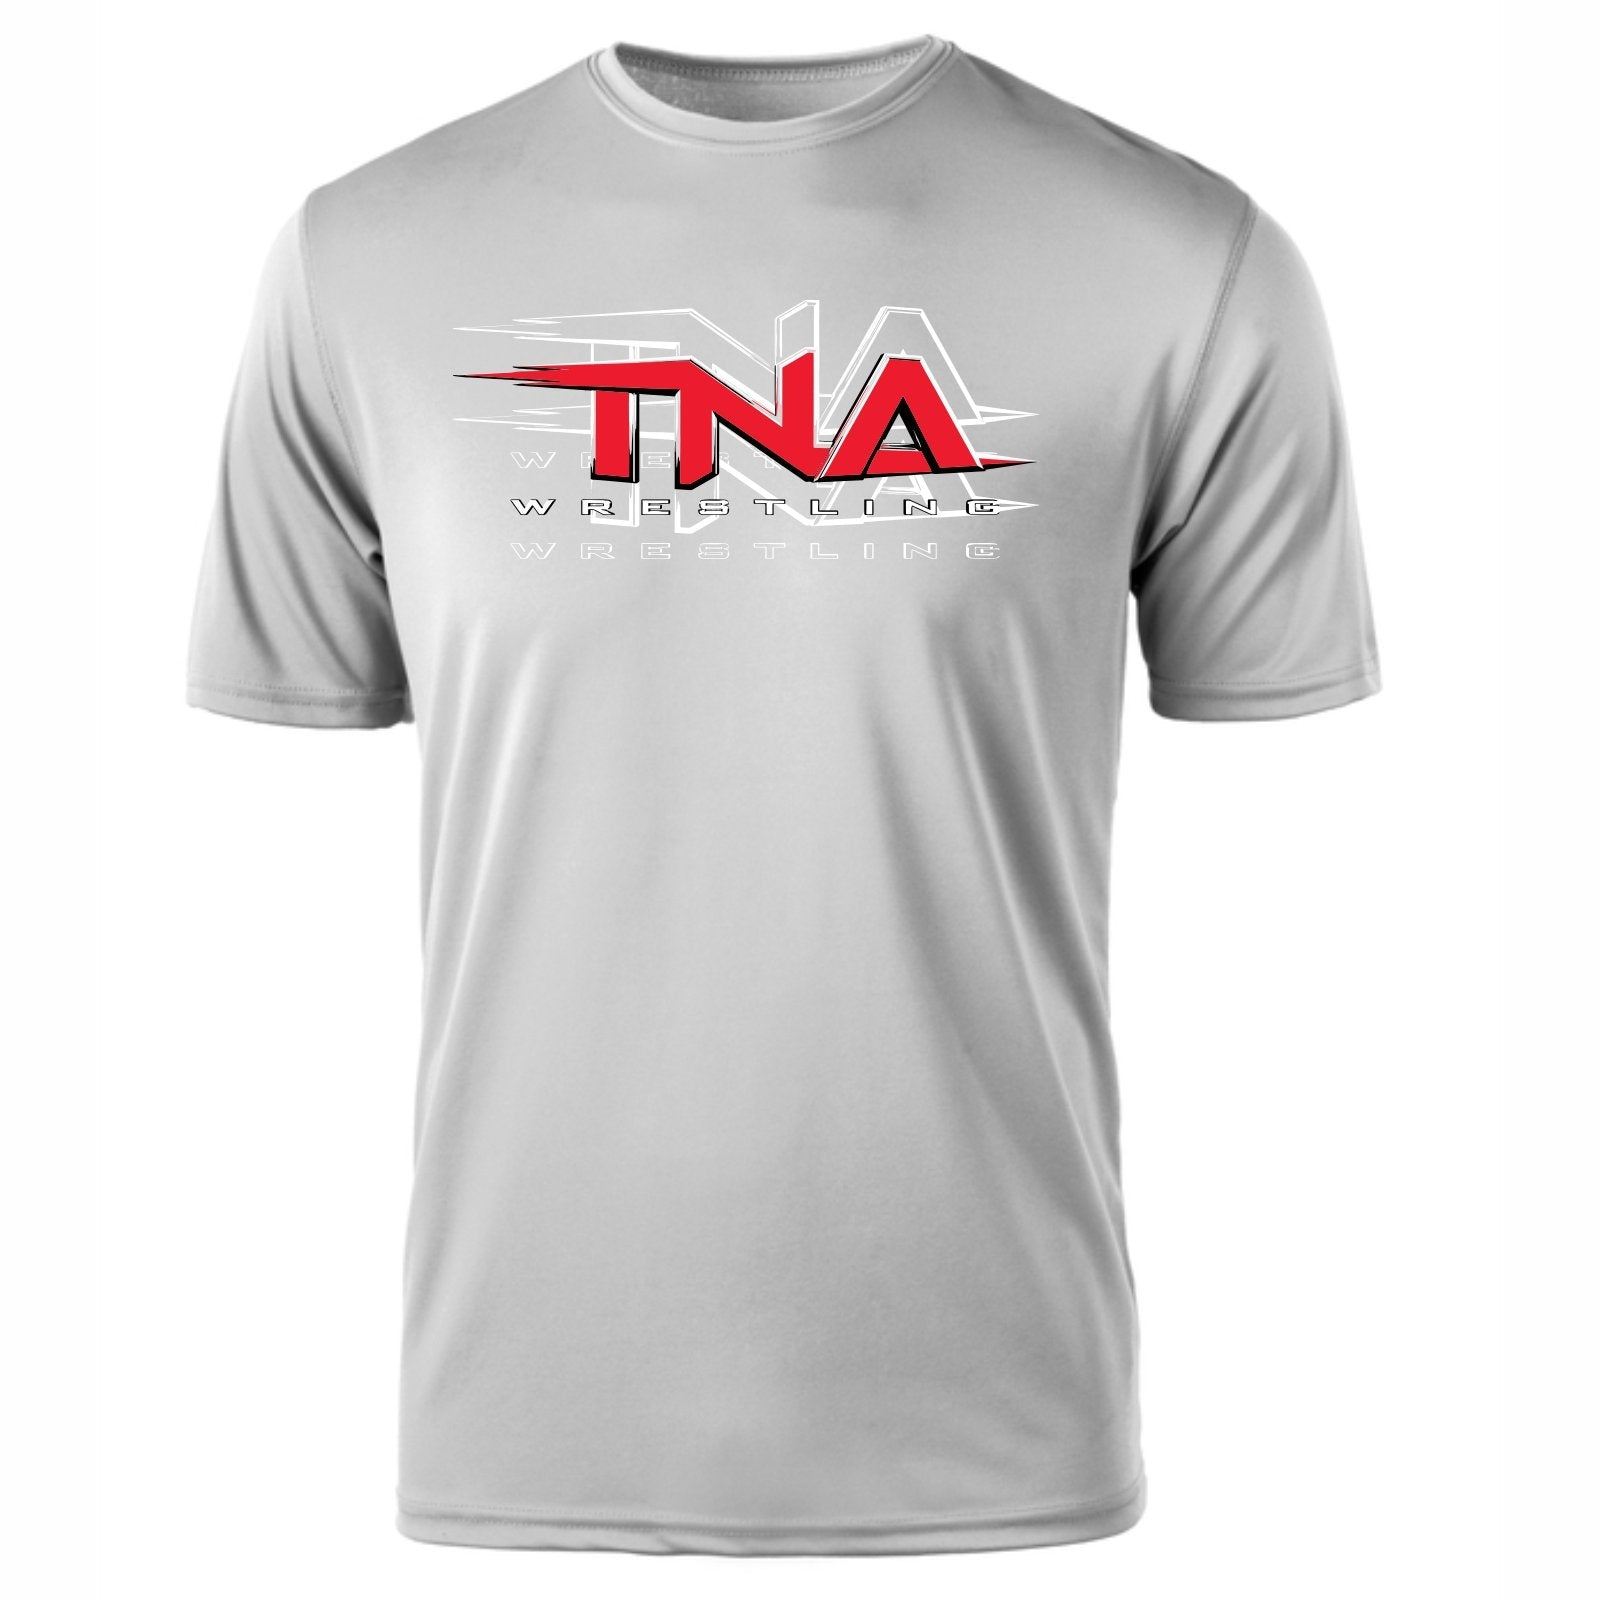 THERE'S NO PLACE LIKE HOME, TNA TEE - GREY